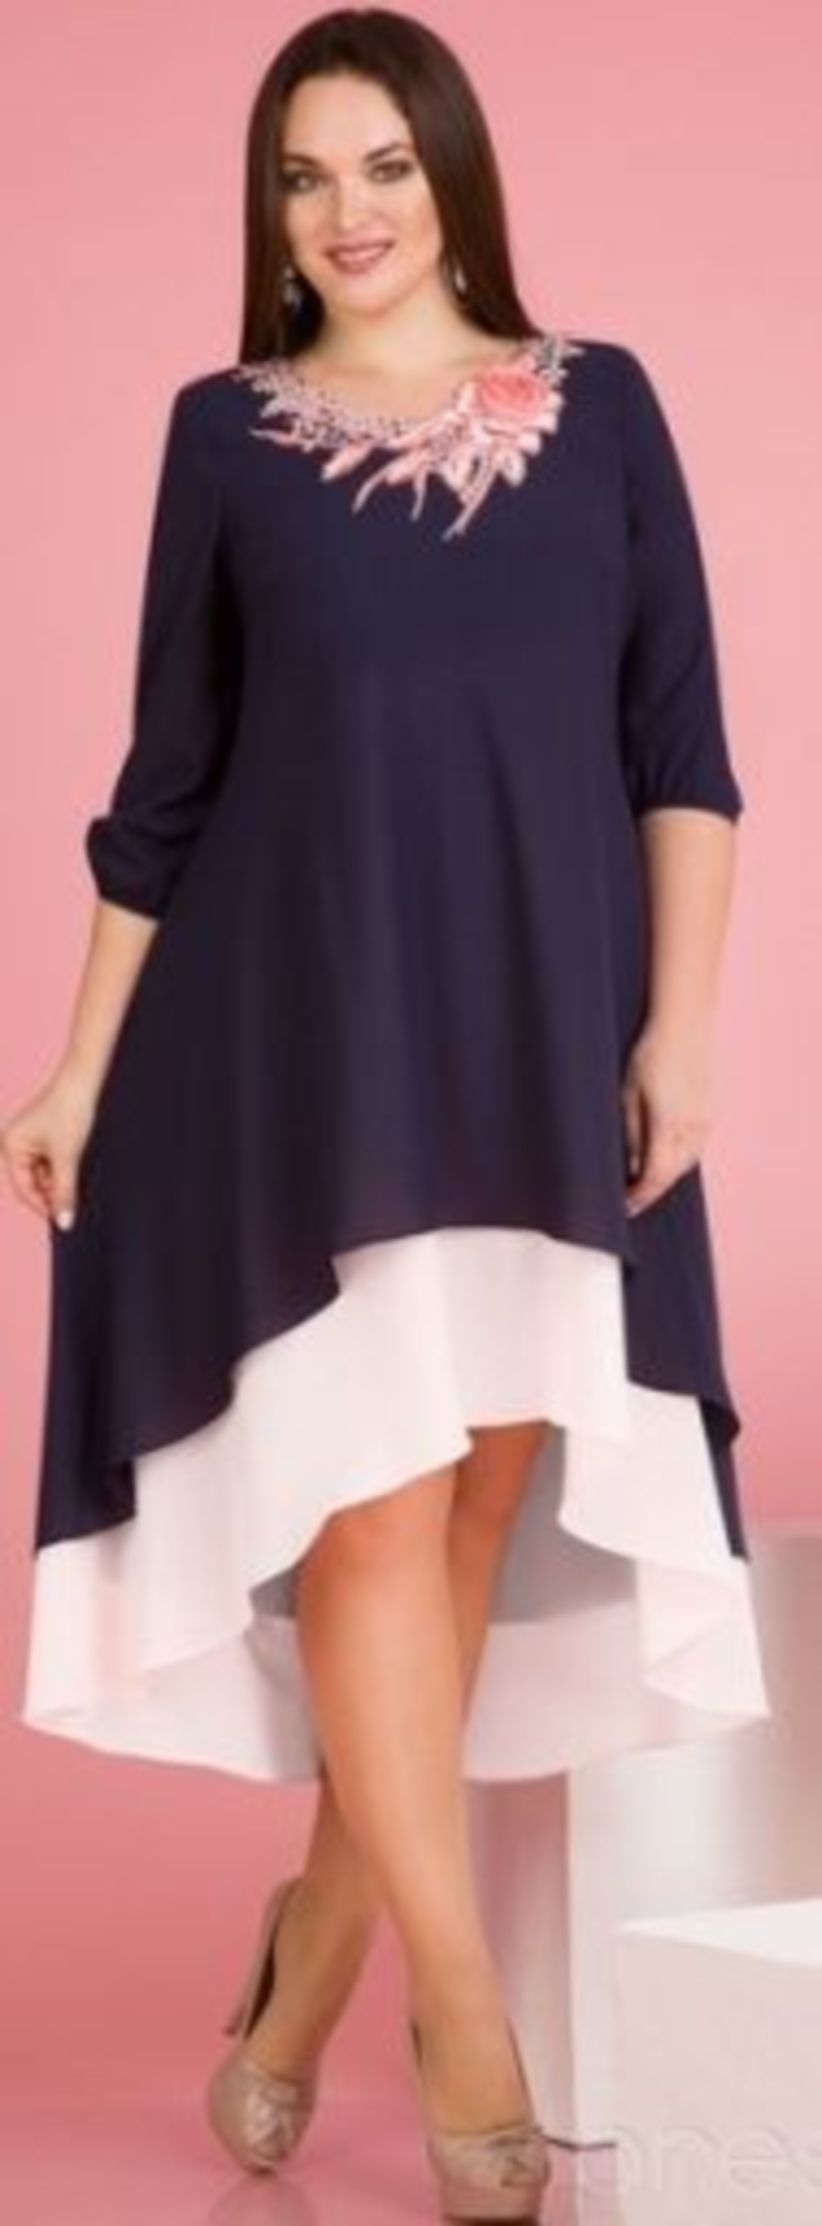 41 Casual Dress Plus Size for Women Over 40 this Fall Winter is part of Clothes Fall Plus Size - Printed fabric is a significant choice for casual dresses too  Wrap dresses can make you look beautiful in a very feminine way  You can try cutting dresses and dresses with vertical stripes to make your illusion higher  A number of facts to consider about the arm include firmness  You can also choose corset drape p